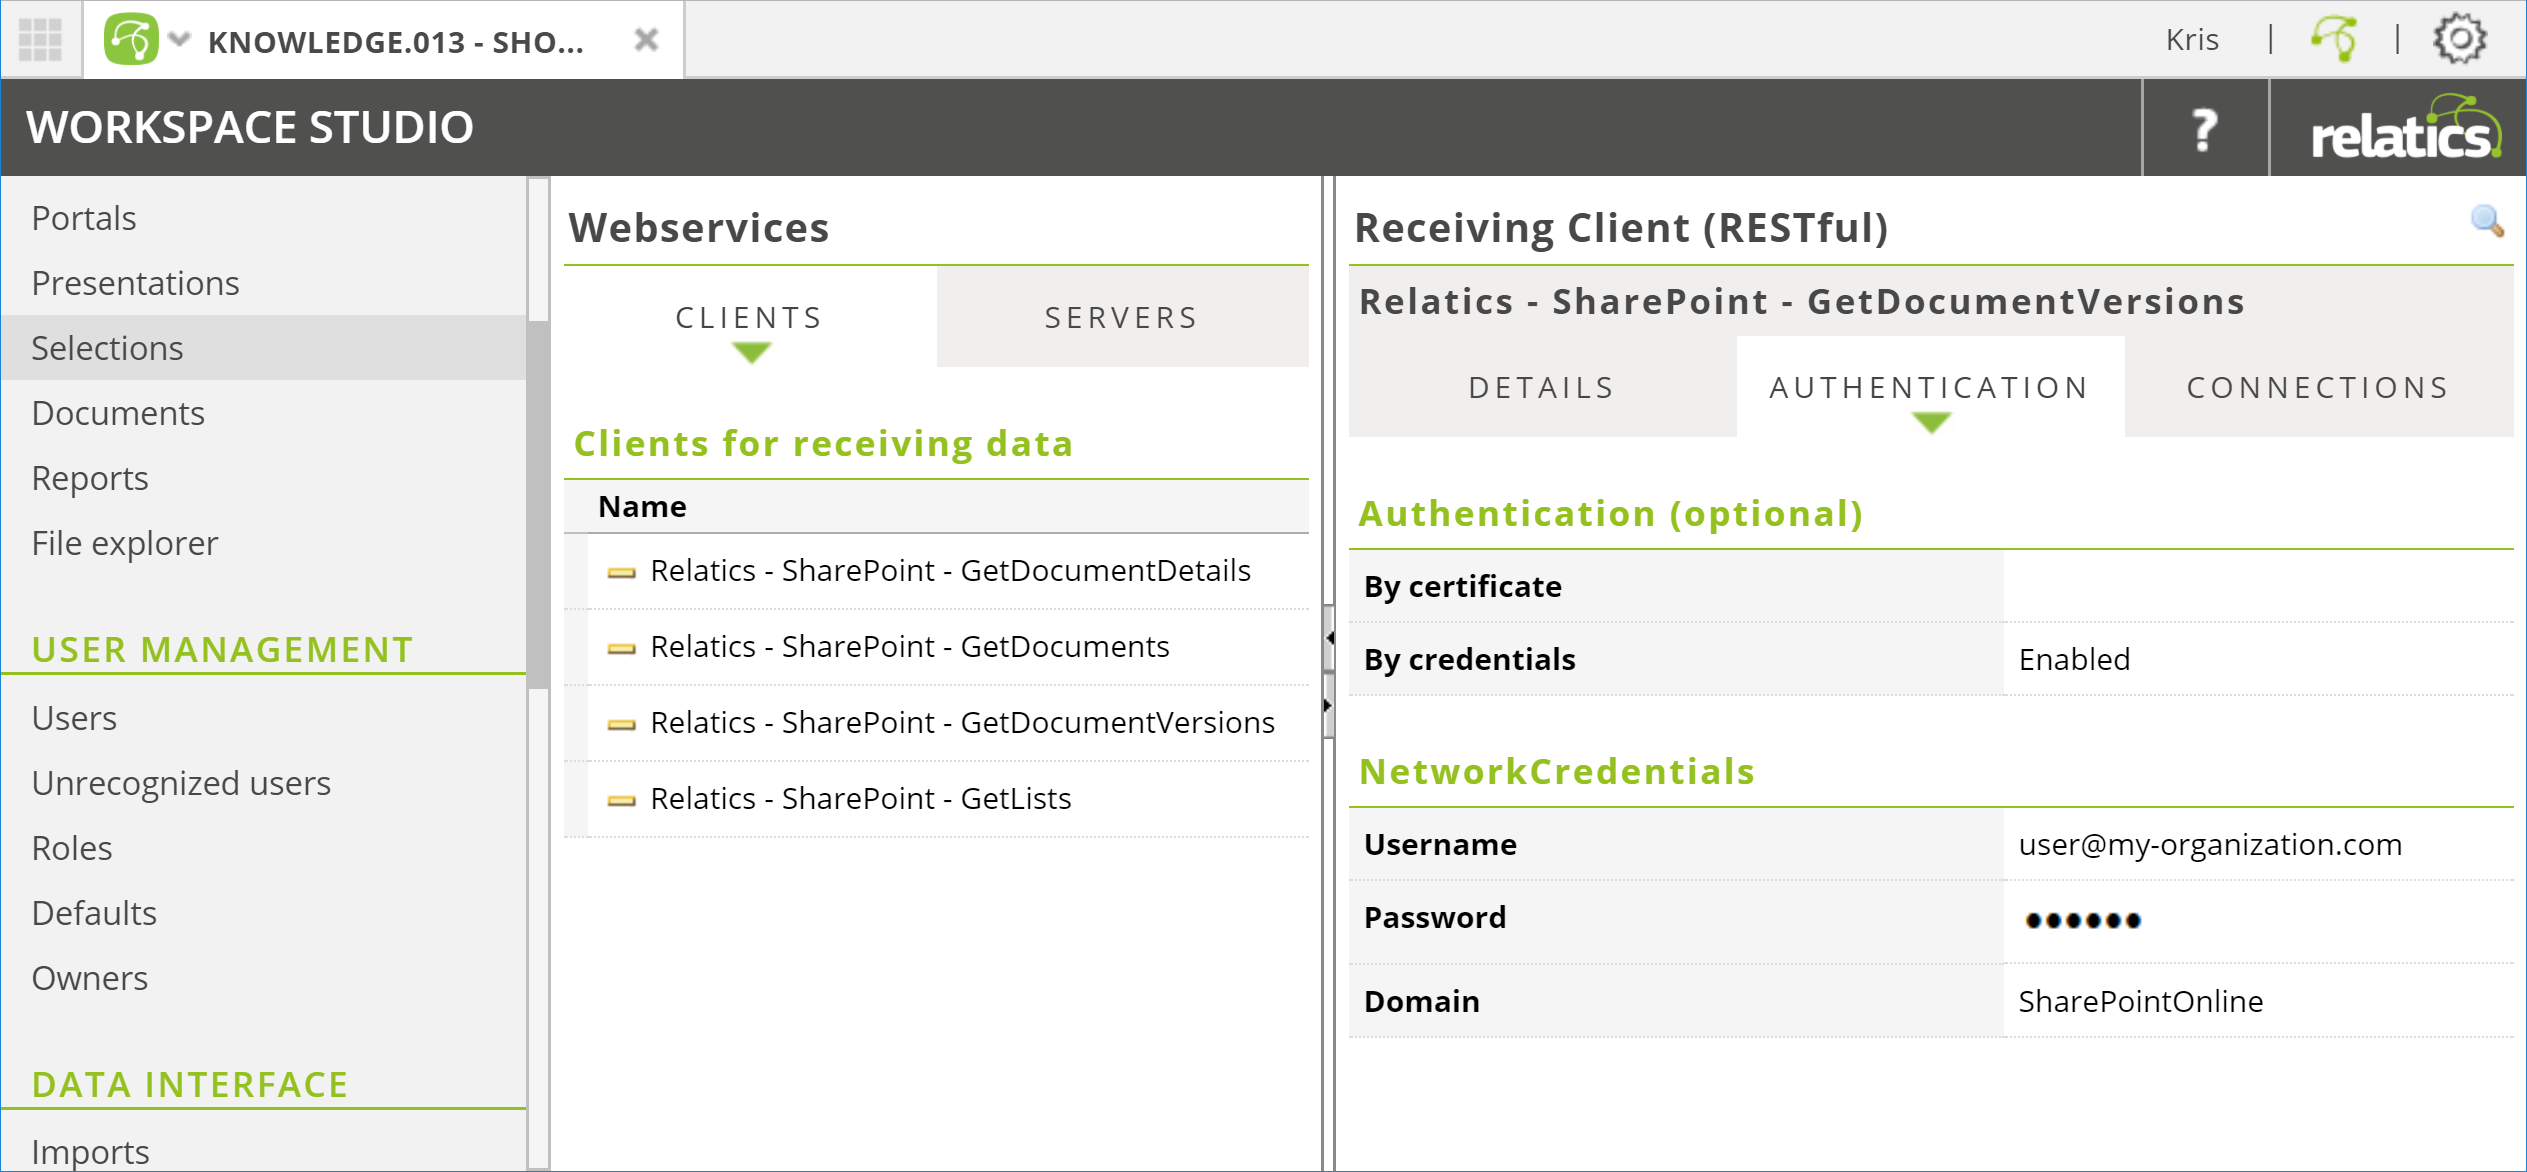 03_relatics-sharepoint-details-authentication